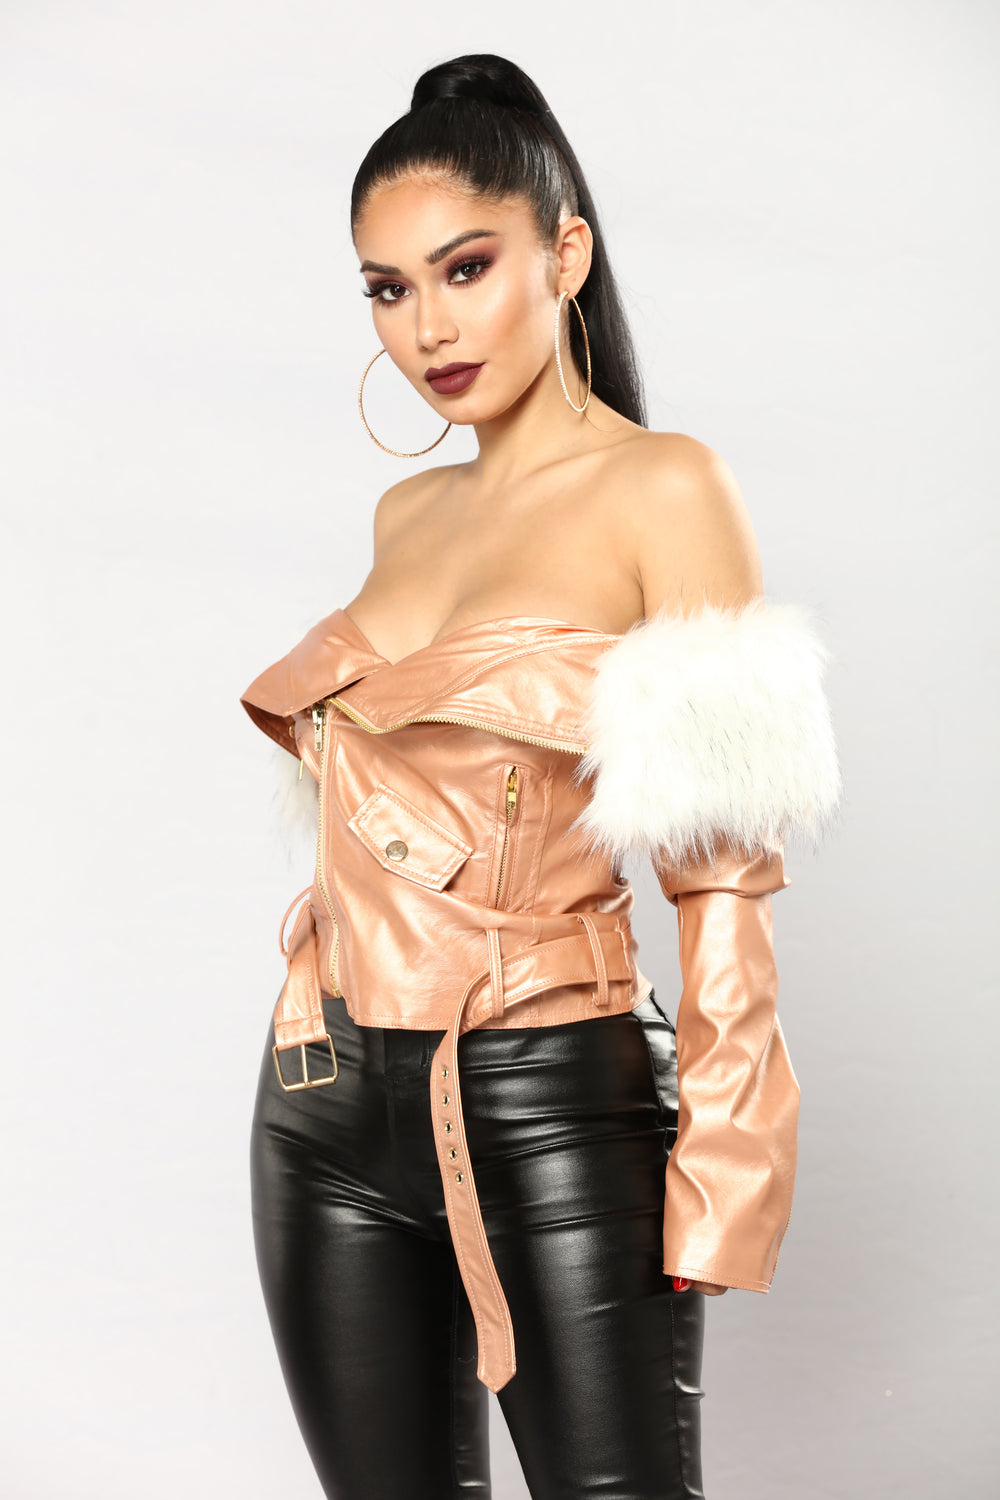 Samantha II Metallic Motto Jackets - Rose Gold